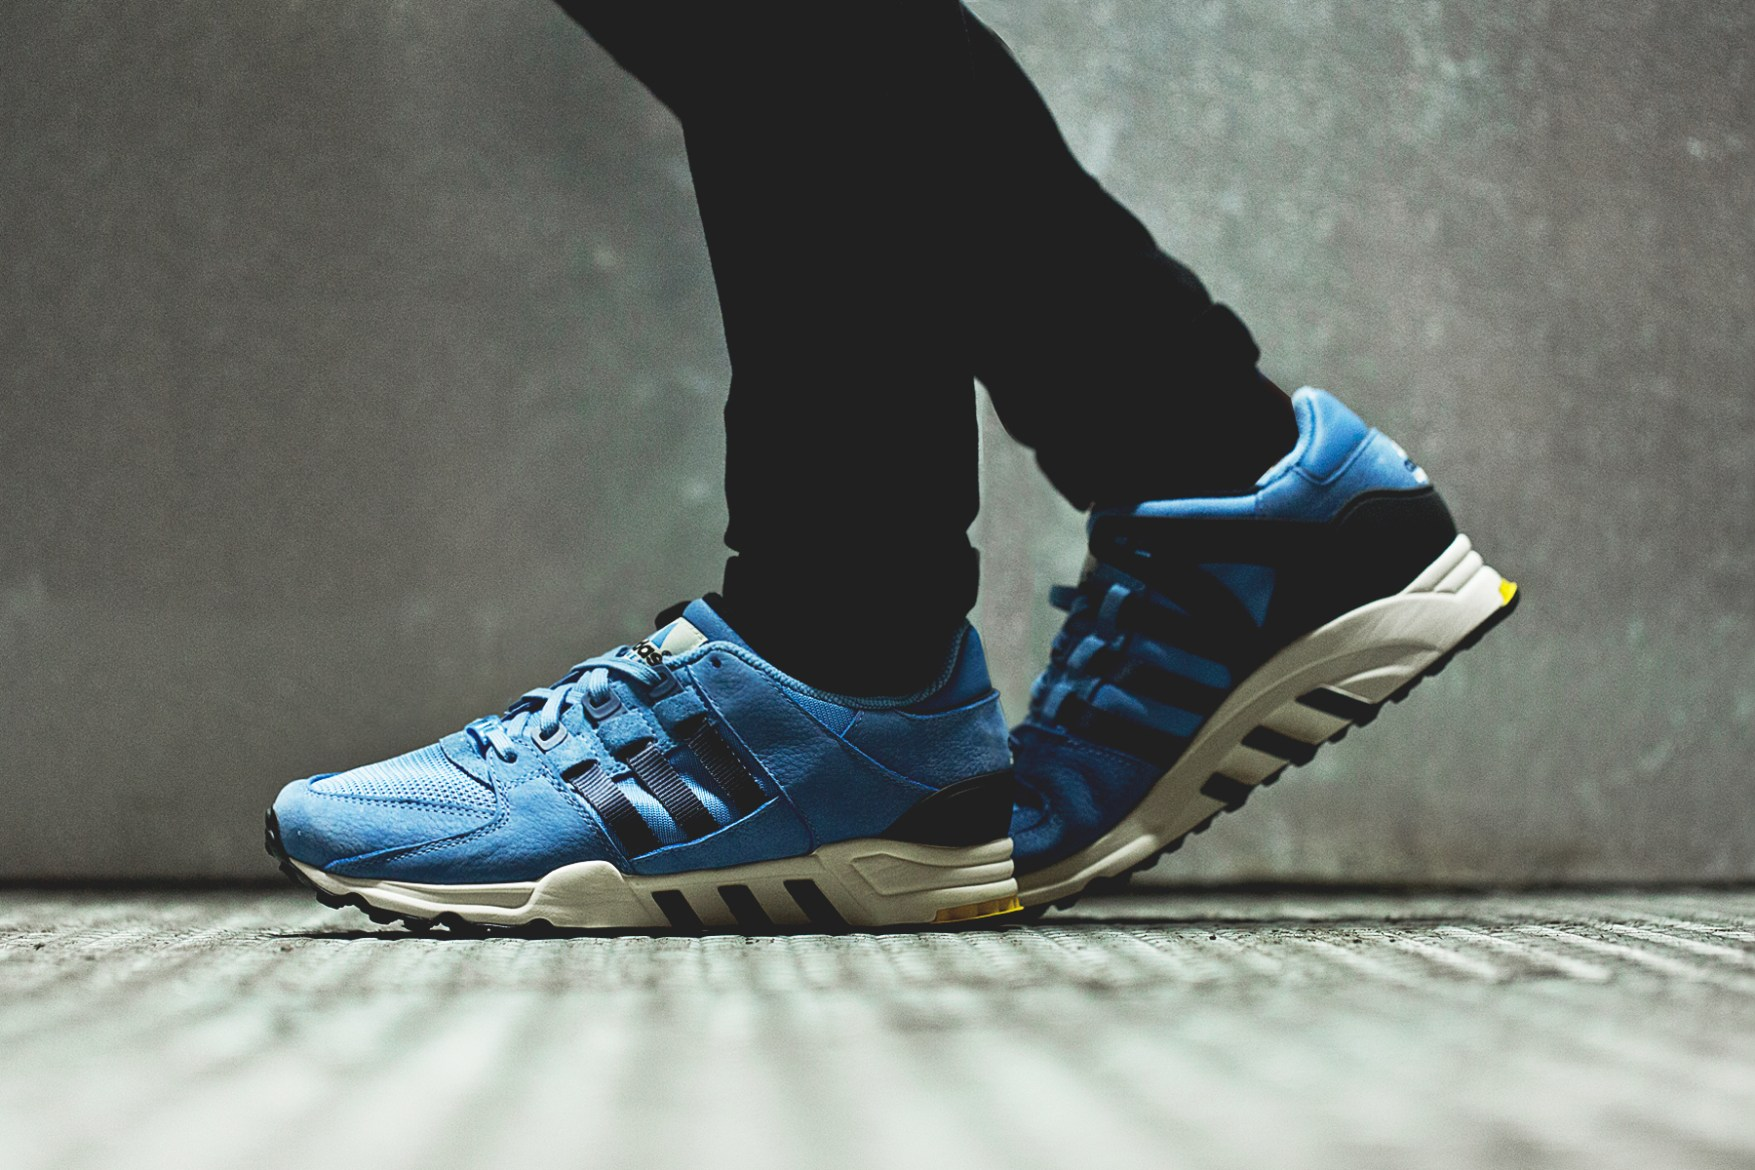 White Mountaineering x adidas EQT Running Support 93 Quietly